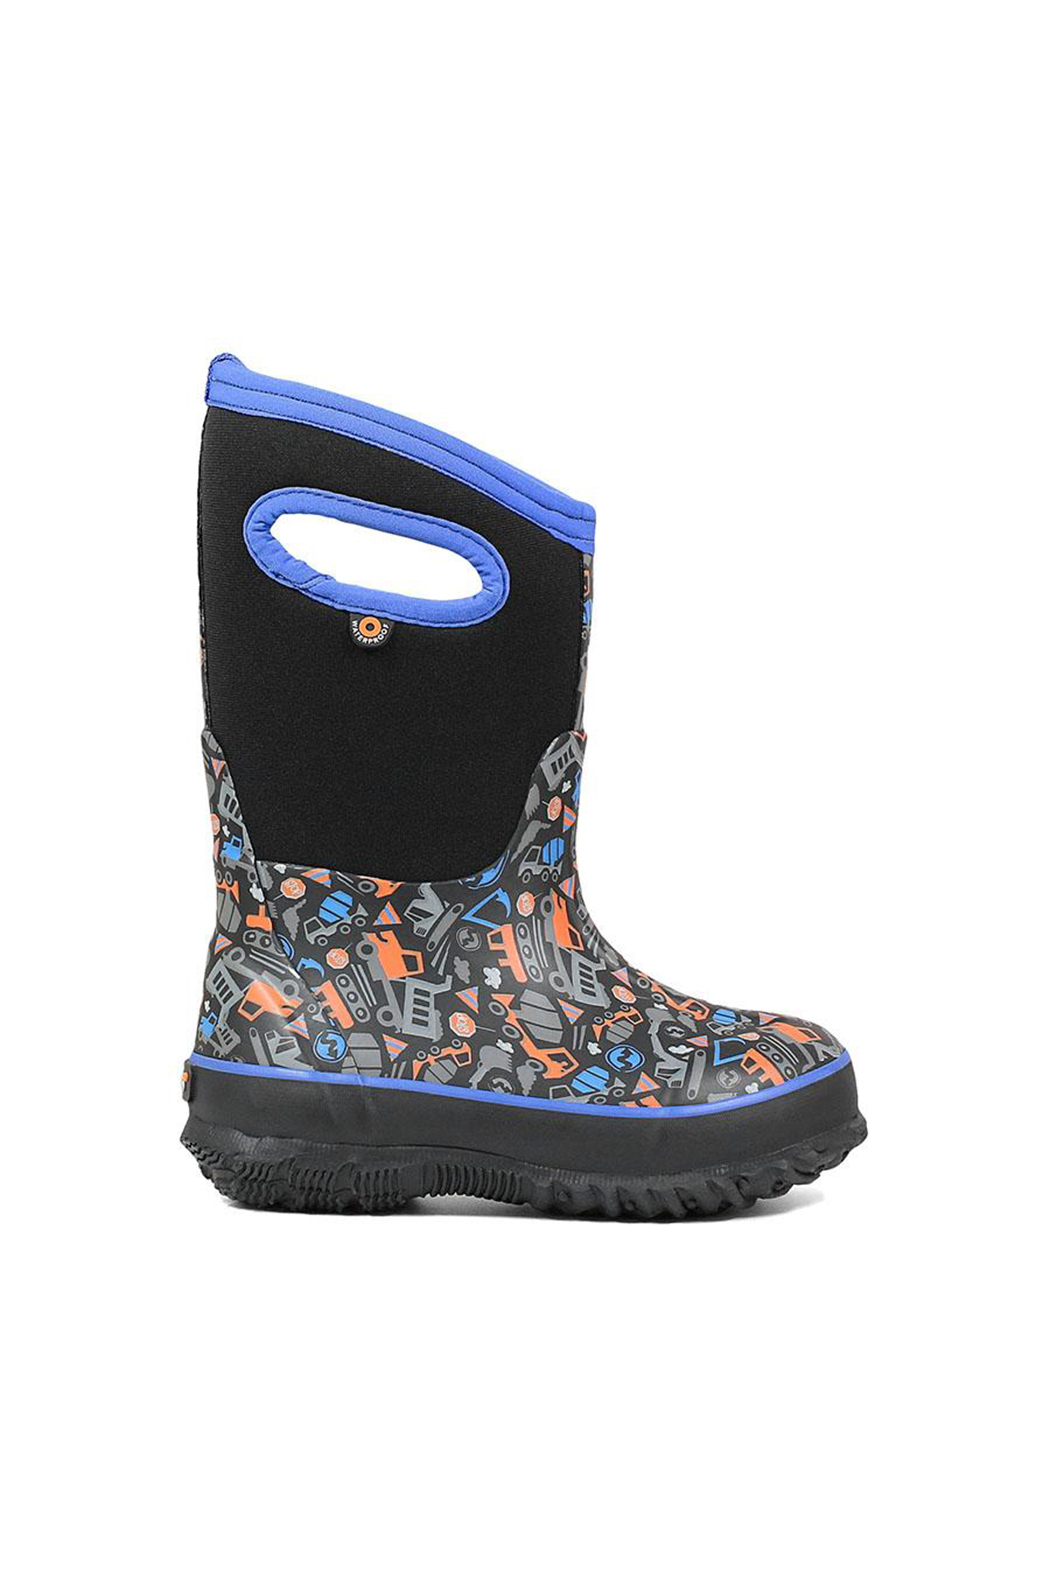 BOGS Classic Construction Kids Insulated Boots - Main Image